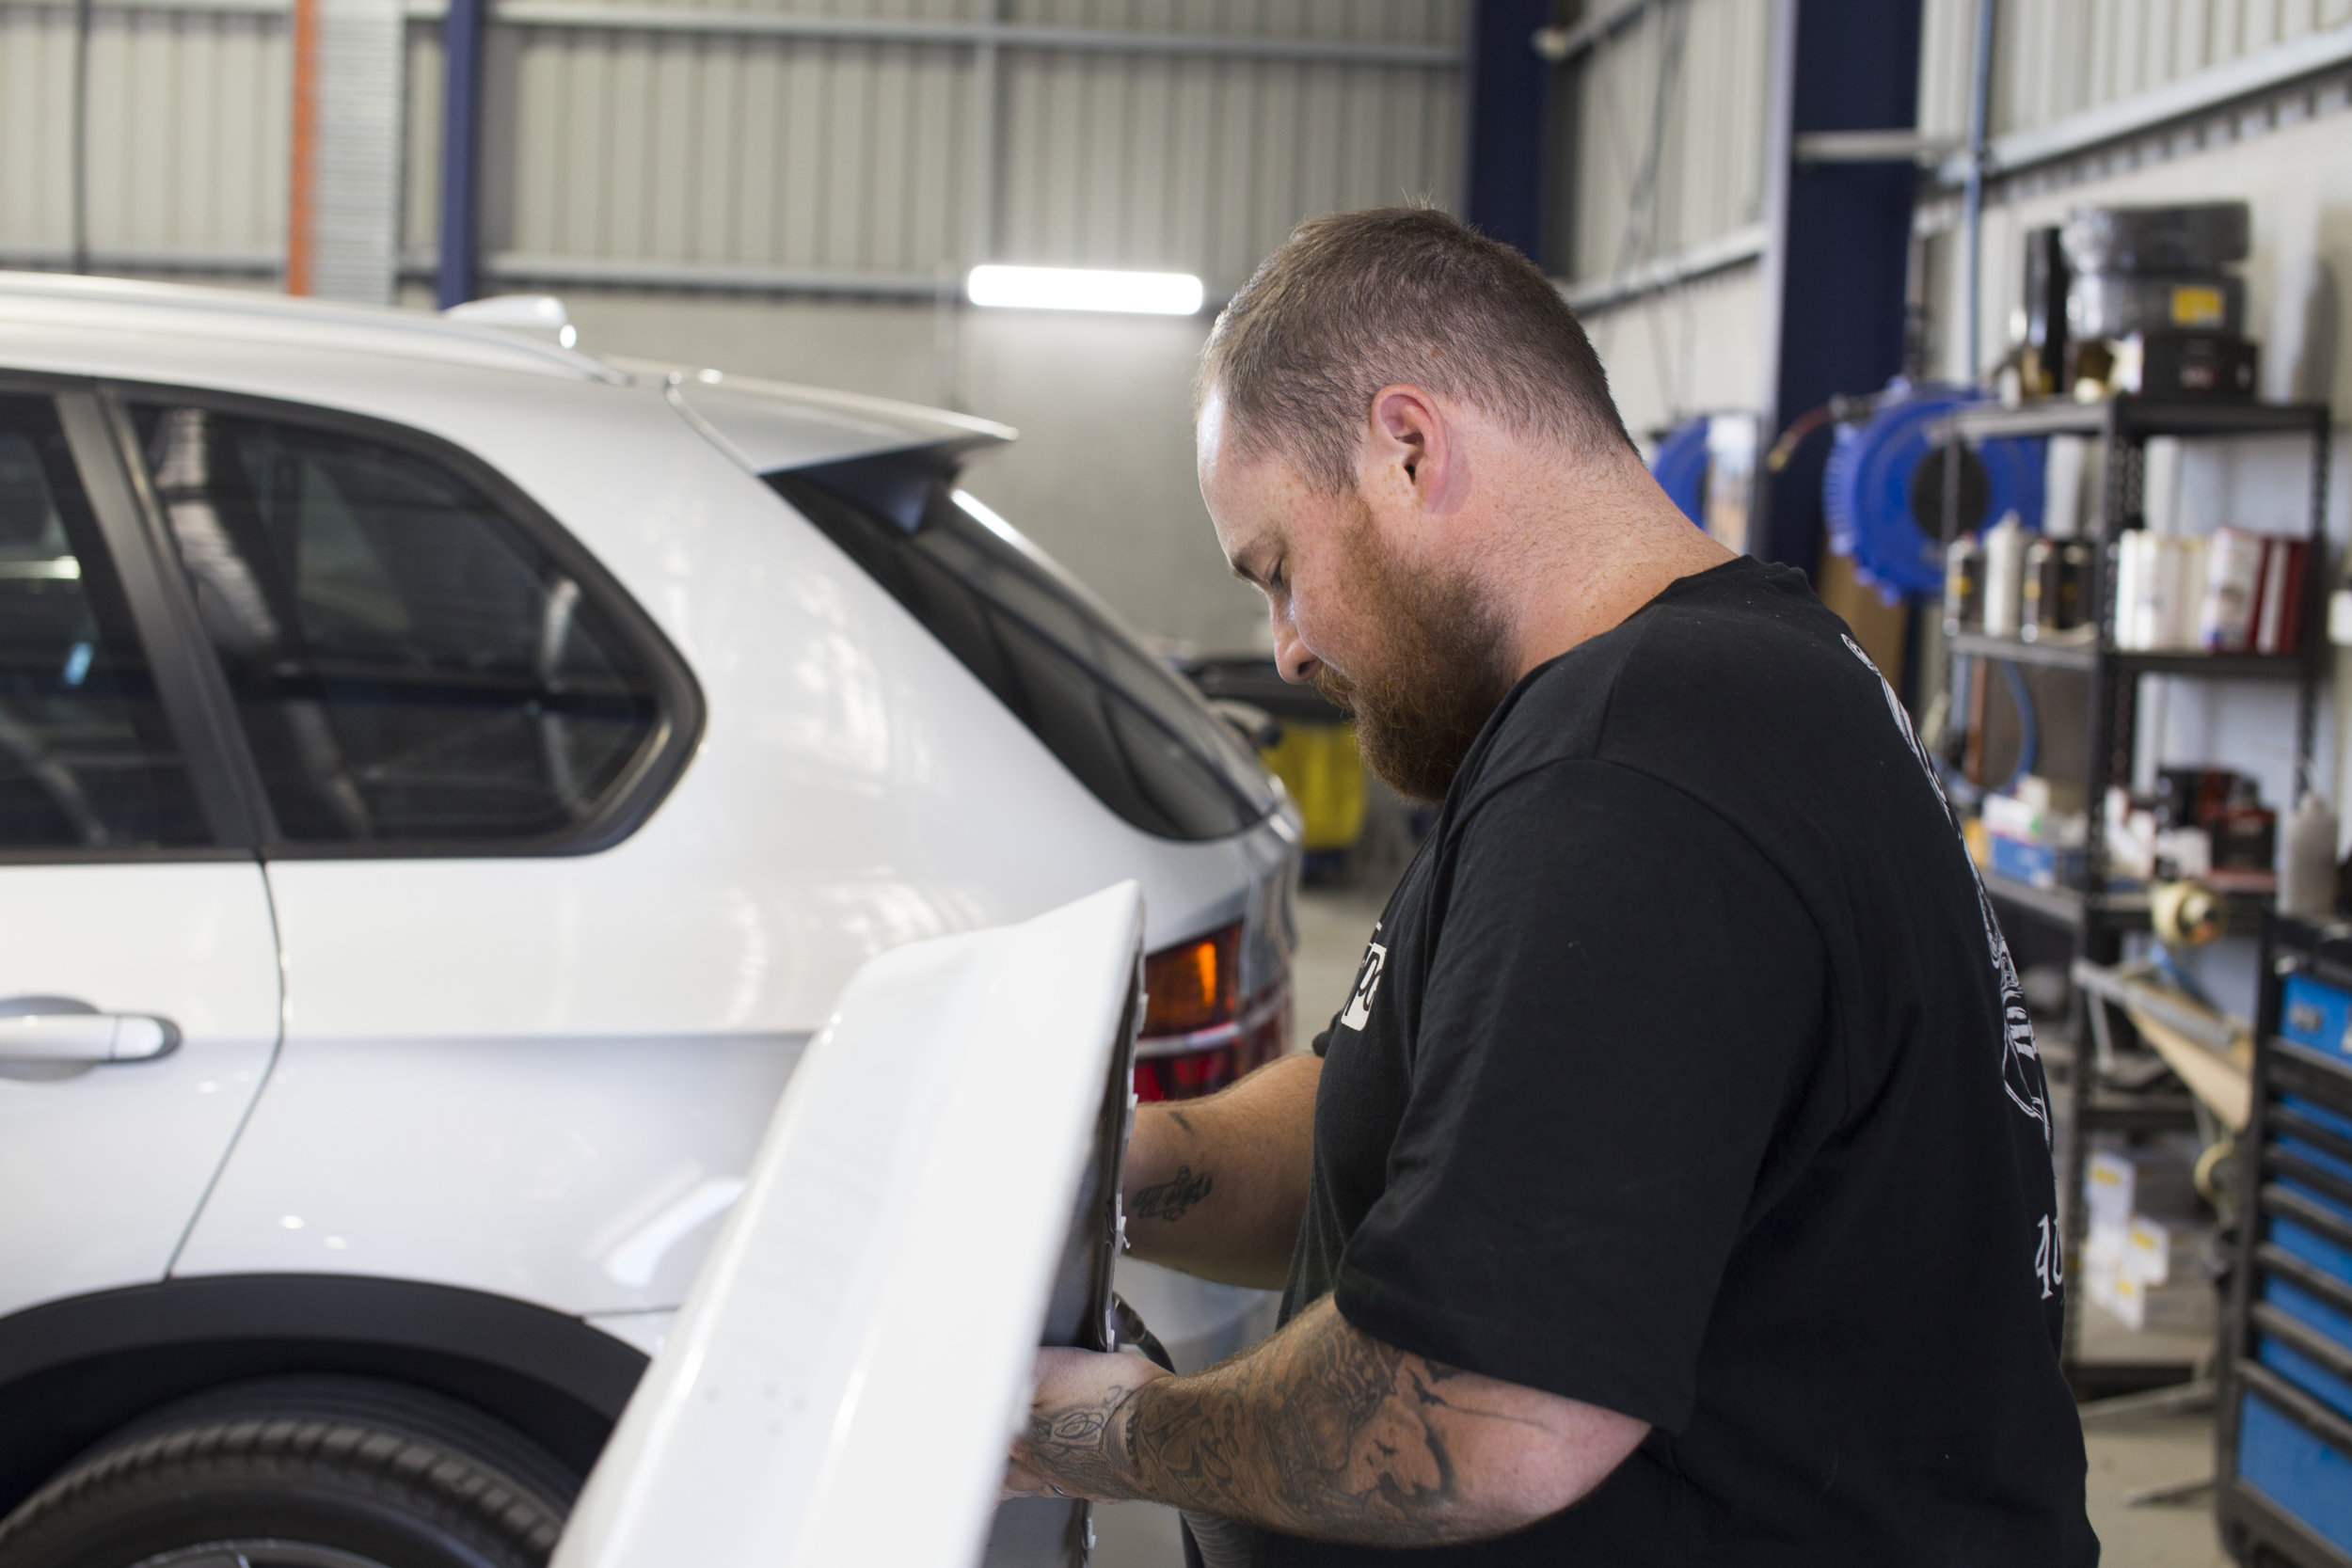 Our Guarantee - We can guarantee that you, the customer, will always be our first priority. Your experience and safety is important to us, so we have a strict quality control checklist that is adhered to by all staff. It thoroughly checks the work we do – parts, structure, mechanics, paint, assembly and cleanliness. Every vehicle that comes through our doors gets a free wash at the end.We also have a feedback process where we survey each customer to better understand their experience. It takes less than a minute and it allows us to assess the quality of our customer service. We want to hear what you liked and where we need to improve. We are constantly working to provide the best service we can. All feedback is good feedback!